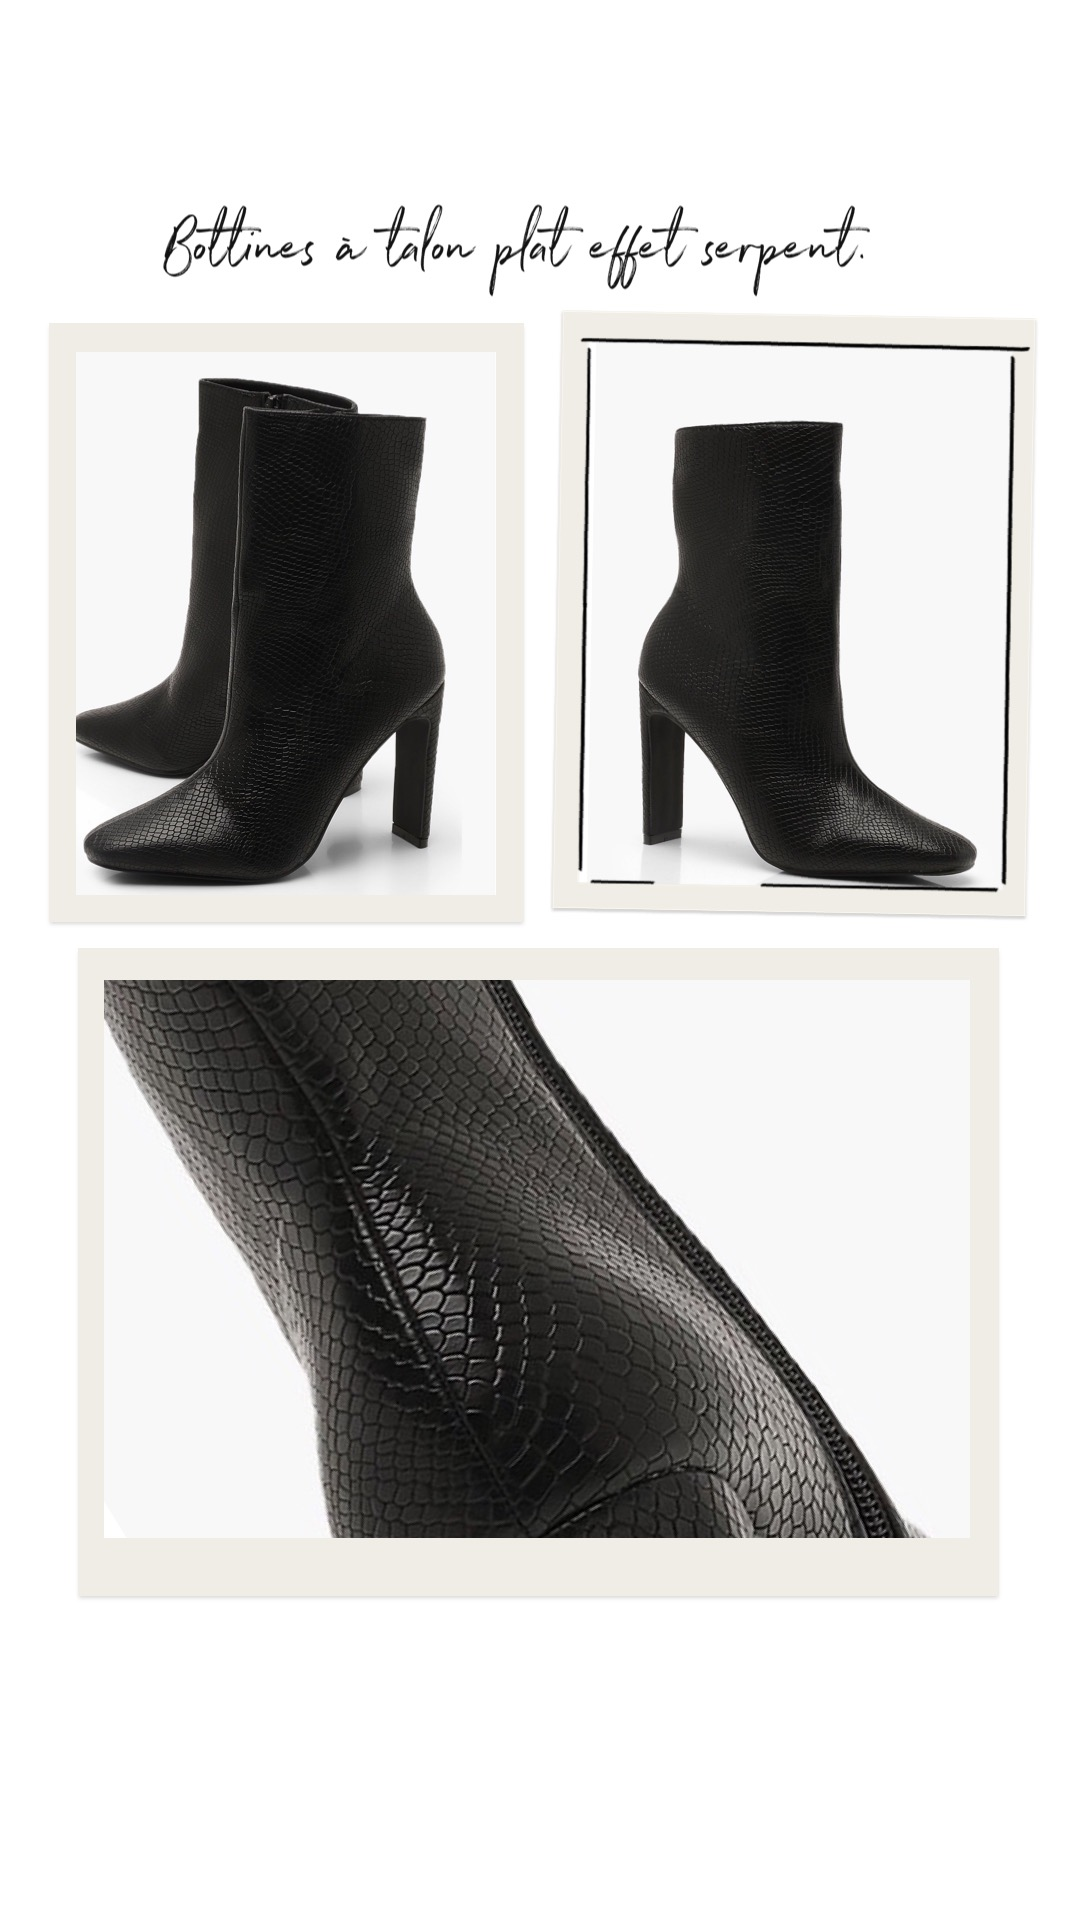 Bottines à talon plat effet serpent https://fr.boohoo.com/bottines-a-talon-plat-effet-serpent/DZZ12469.html Code produit : DZZ12469